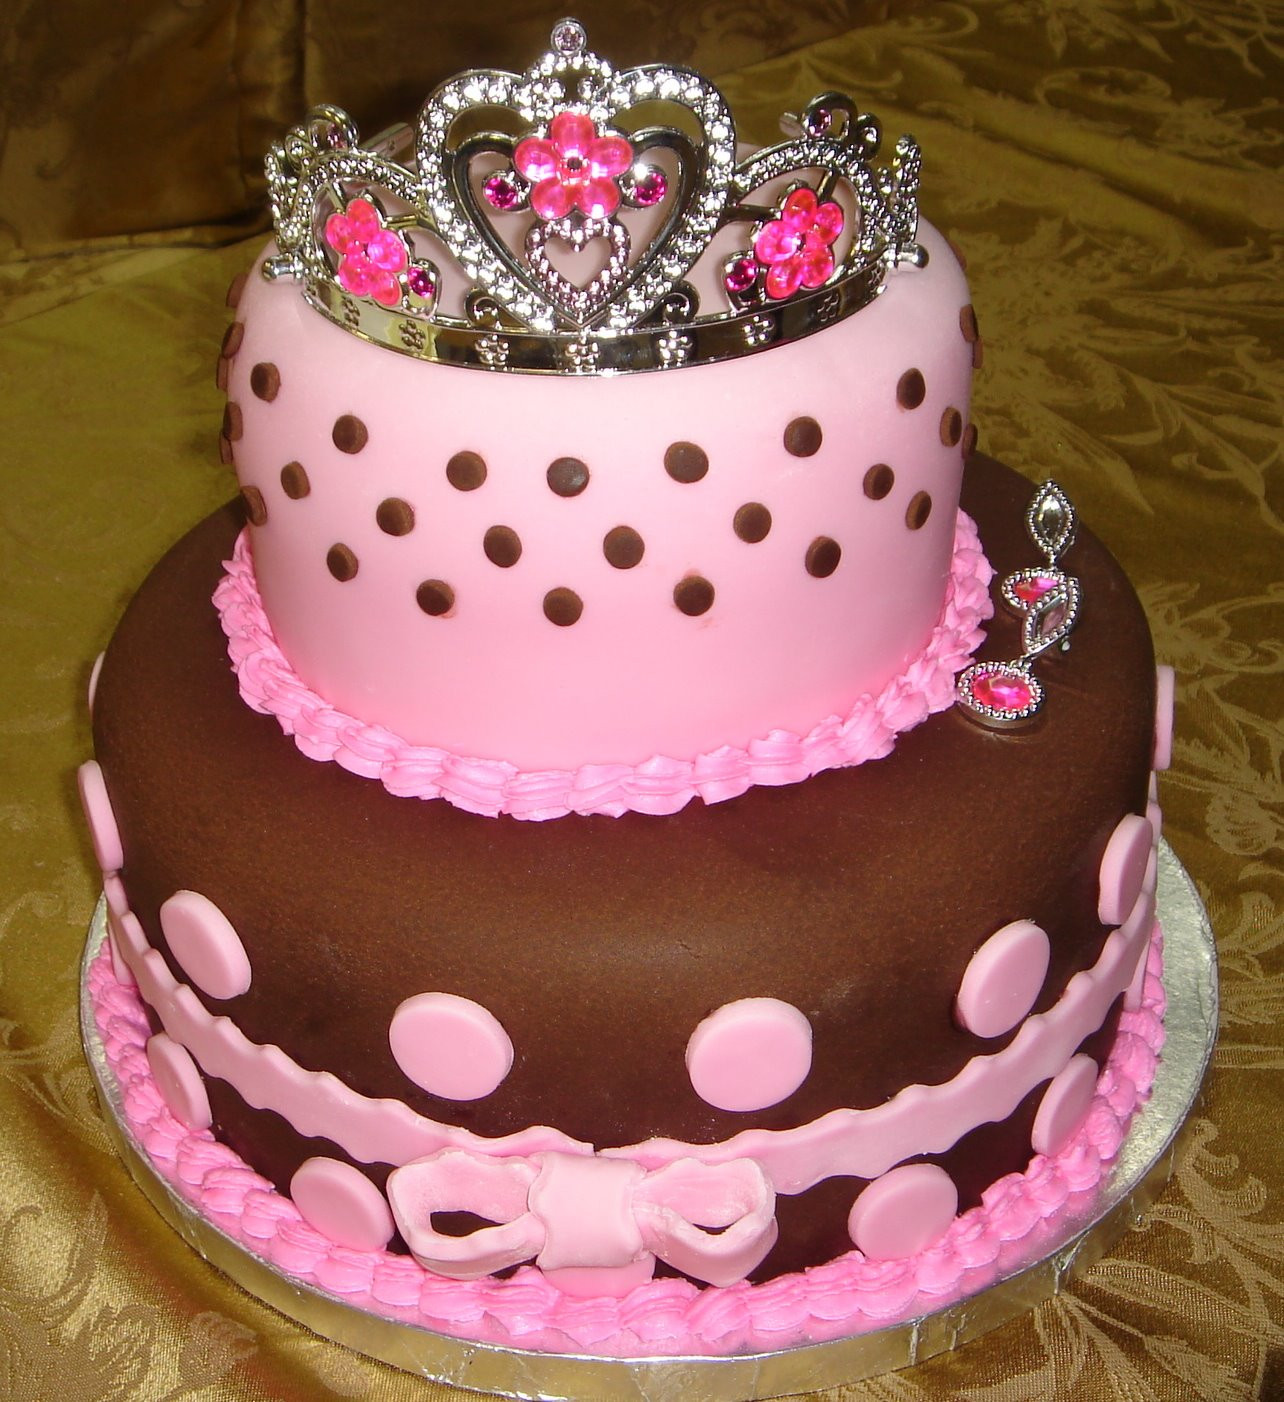 Best ideas about Pink Birthday Cake . Save or Pin cake birthday kids fondant buttercream princess castle Now.